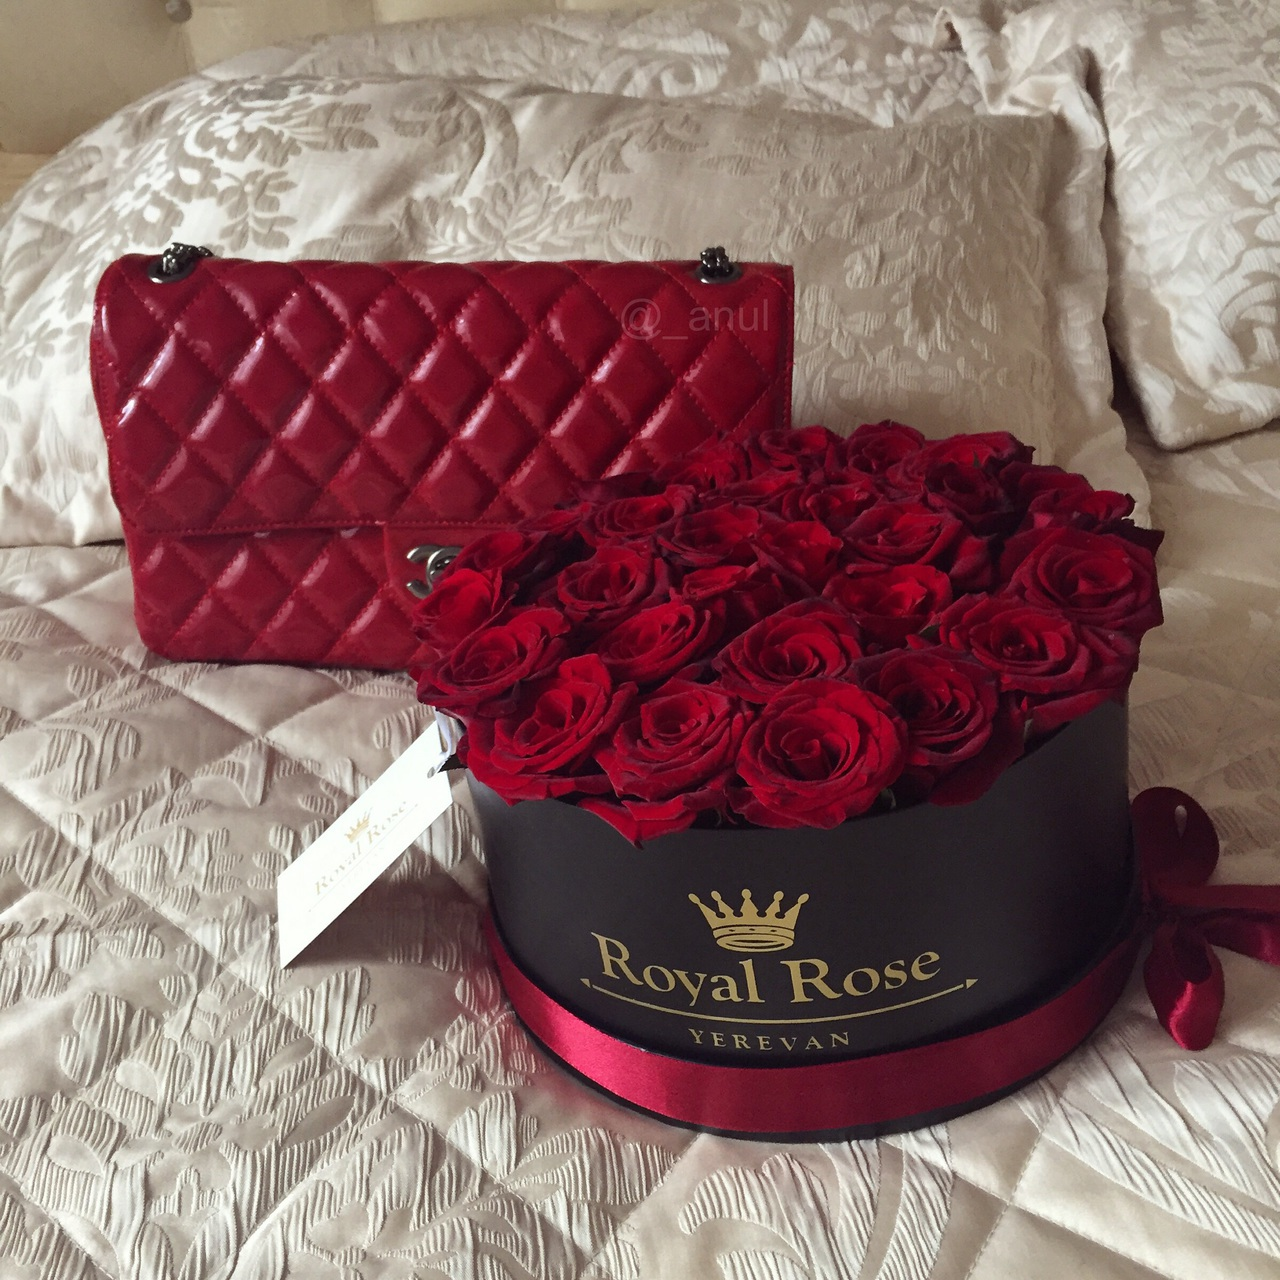 chanel bag, classic, flowers, luxury, red, roses, roses in a box